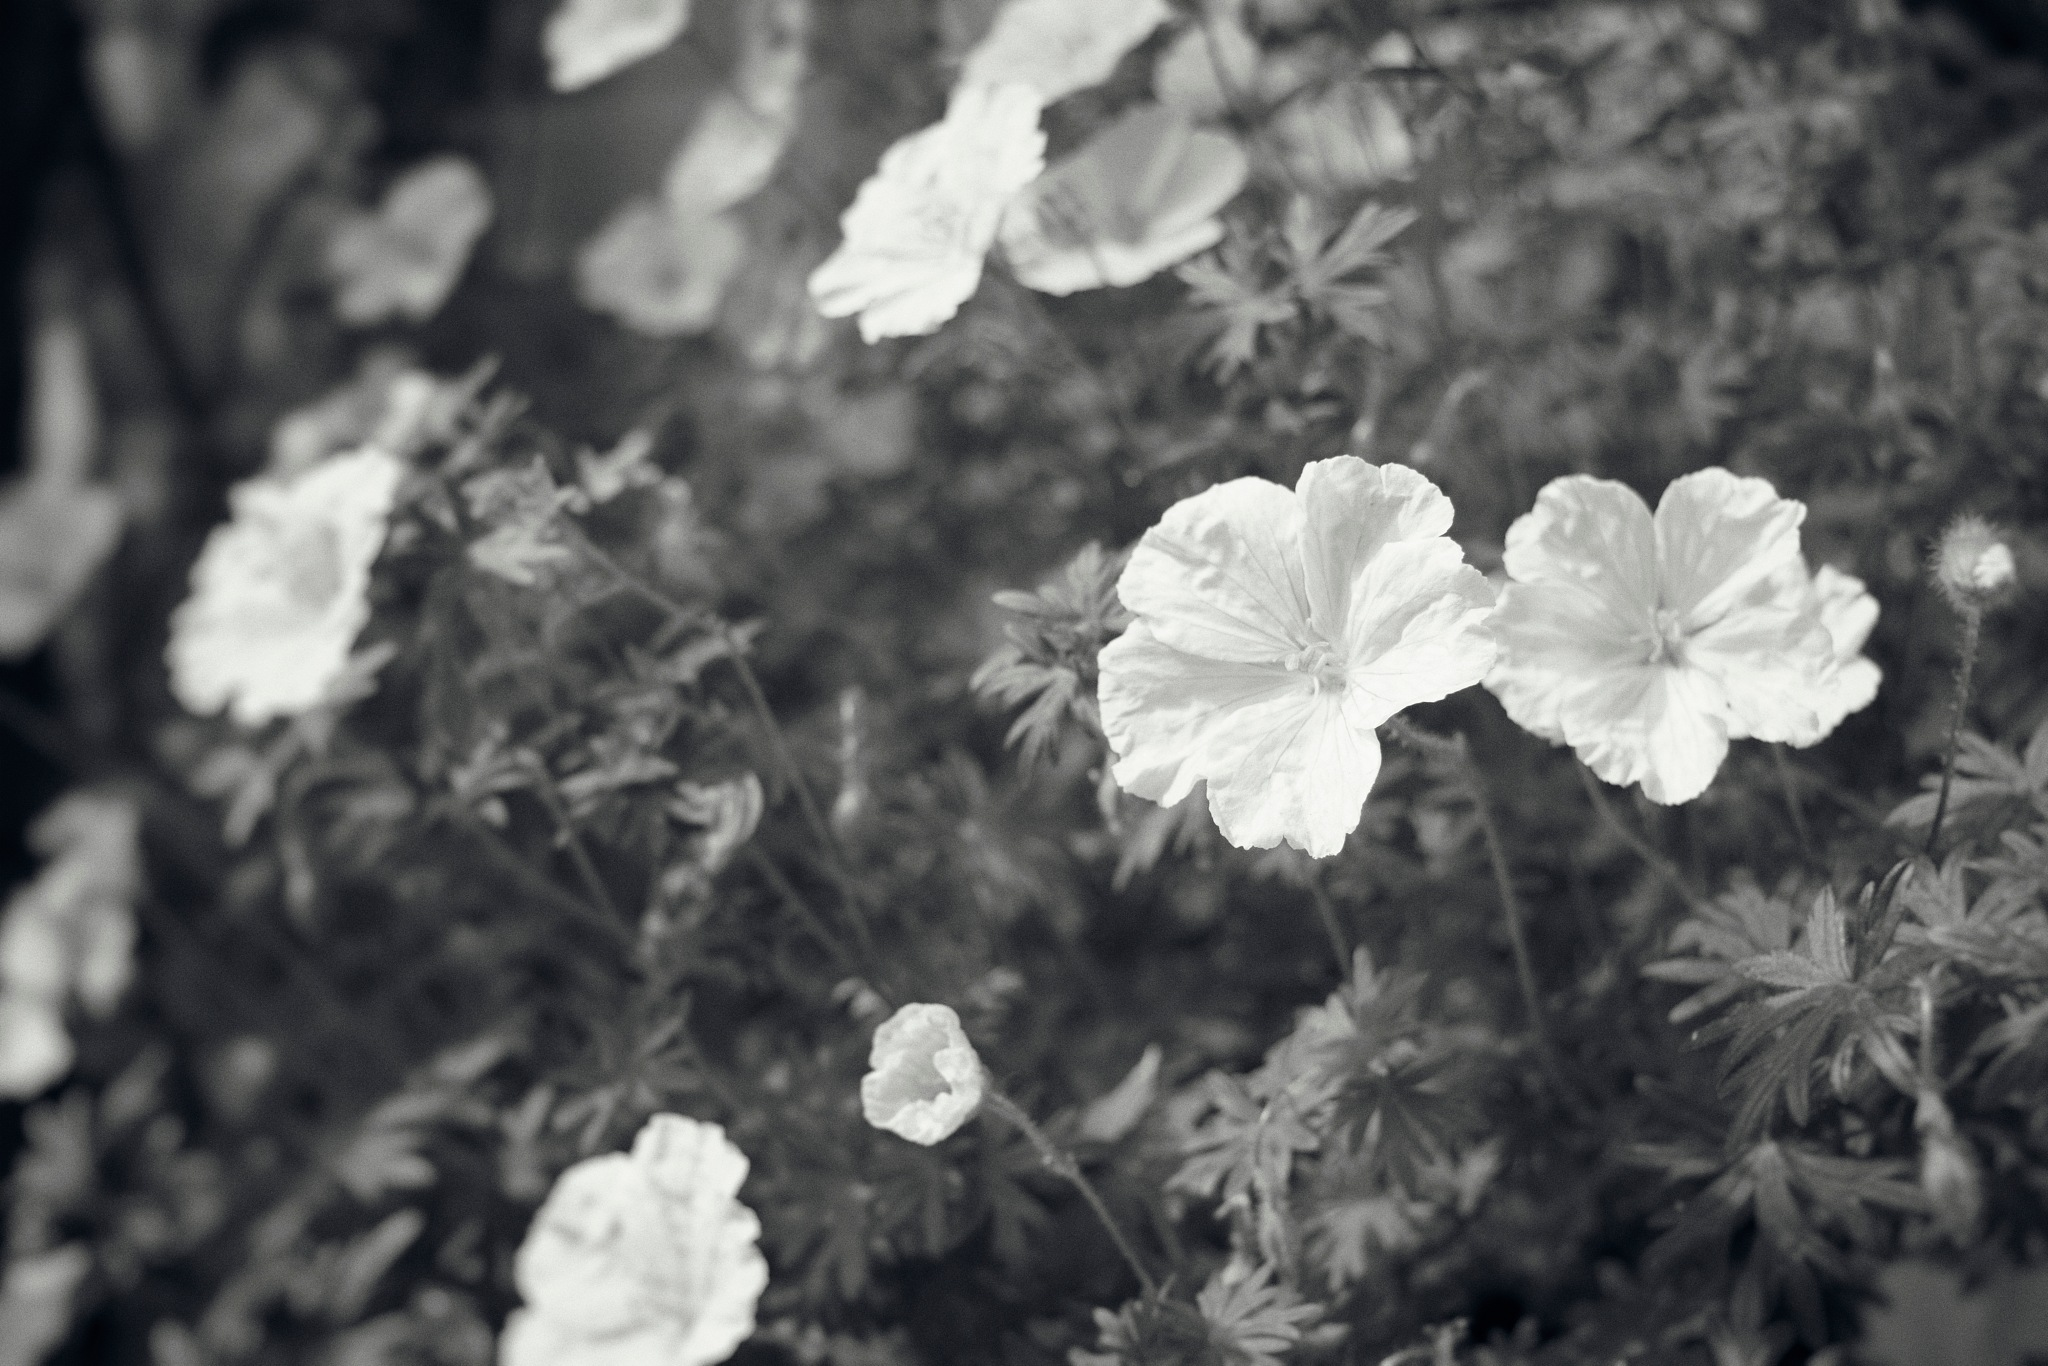 Little White Flowers by In Praise Of Shadows